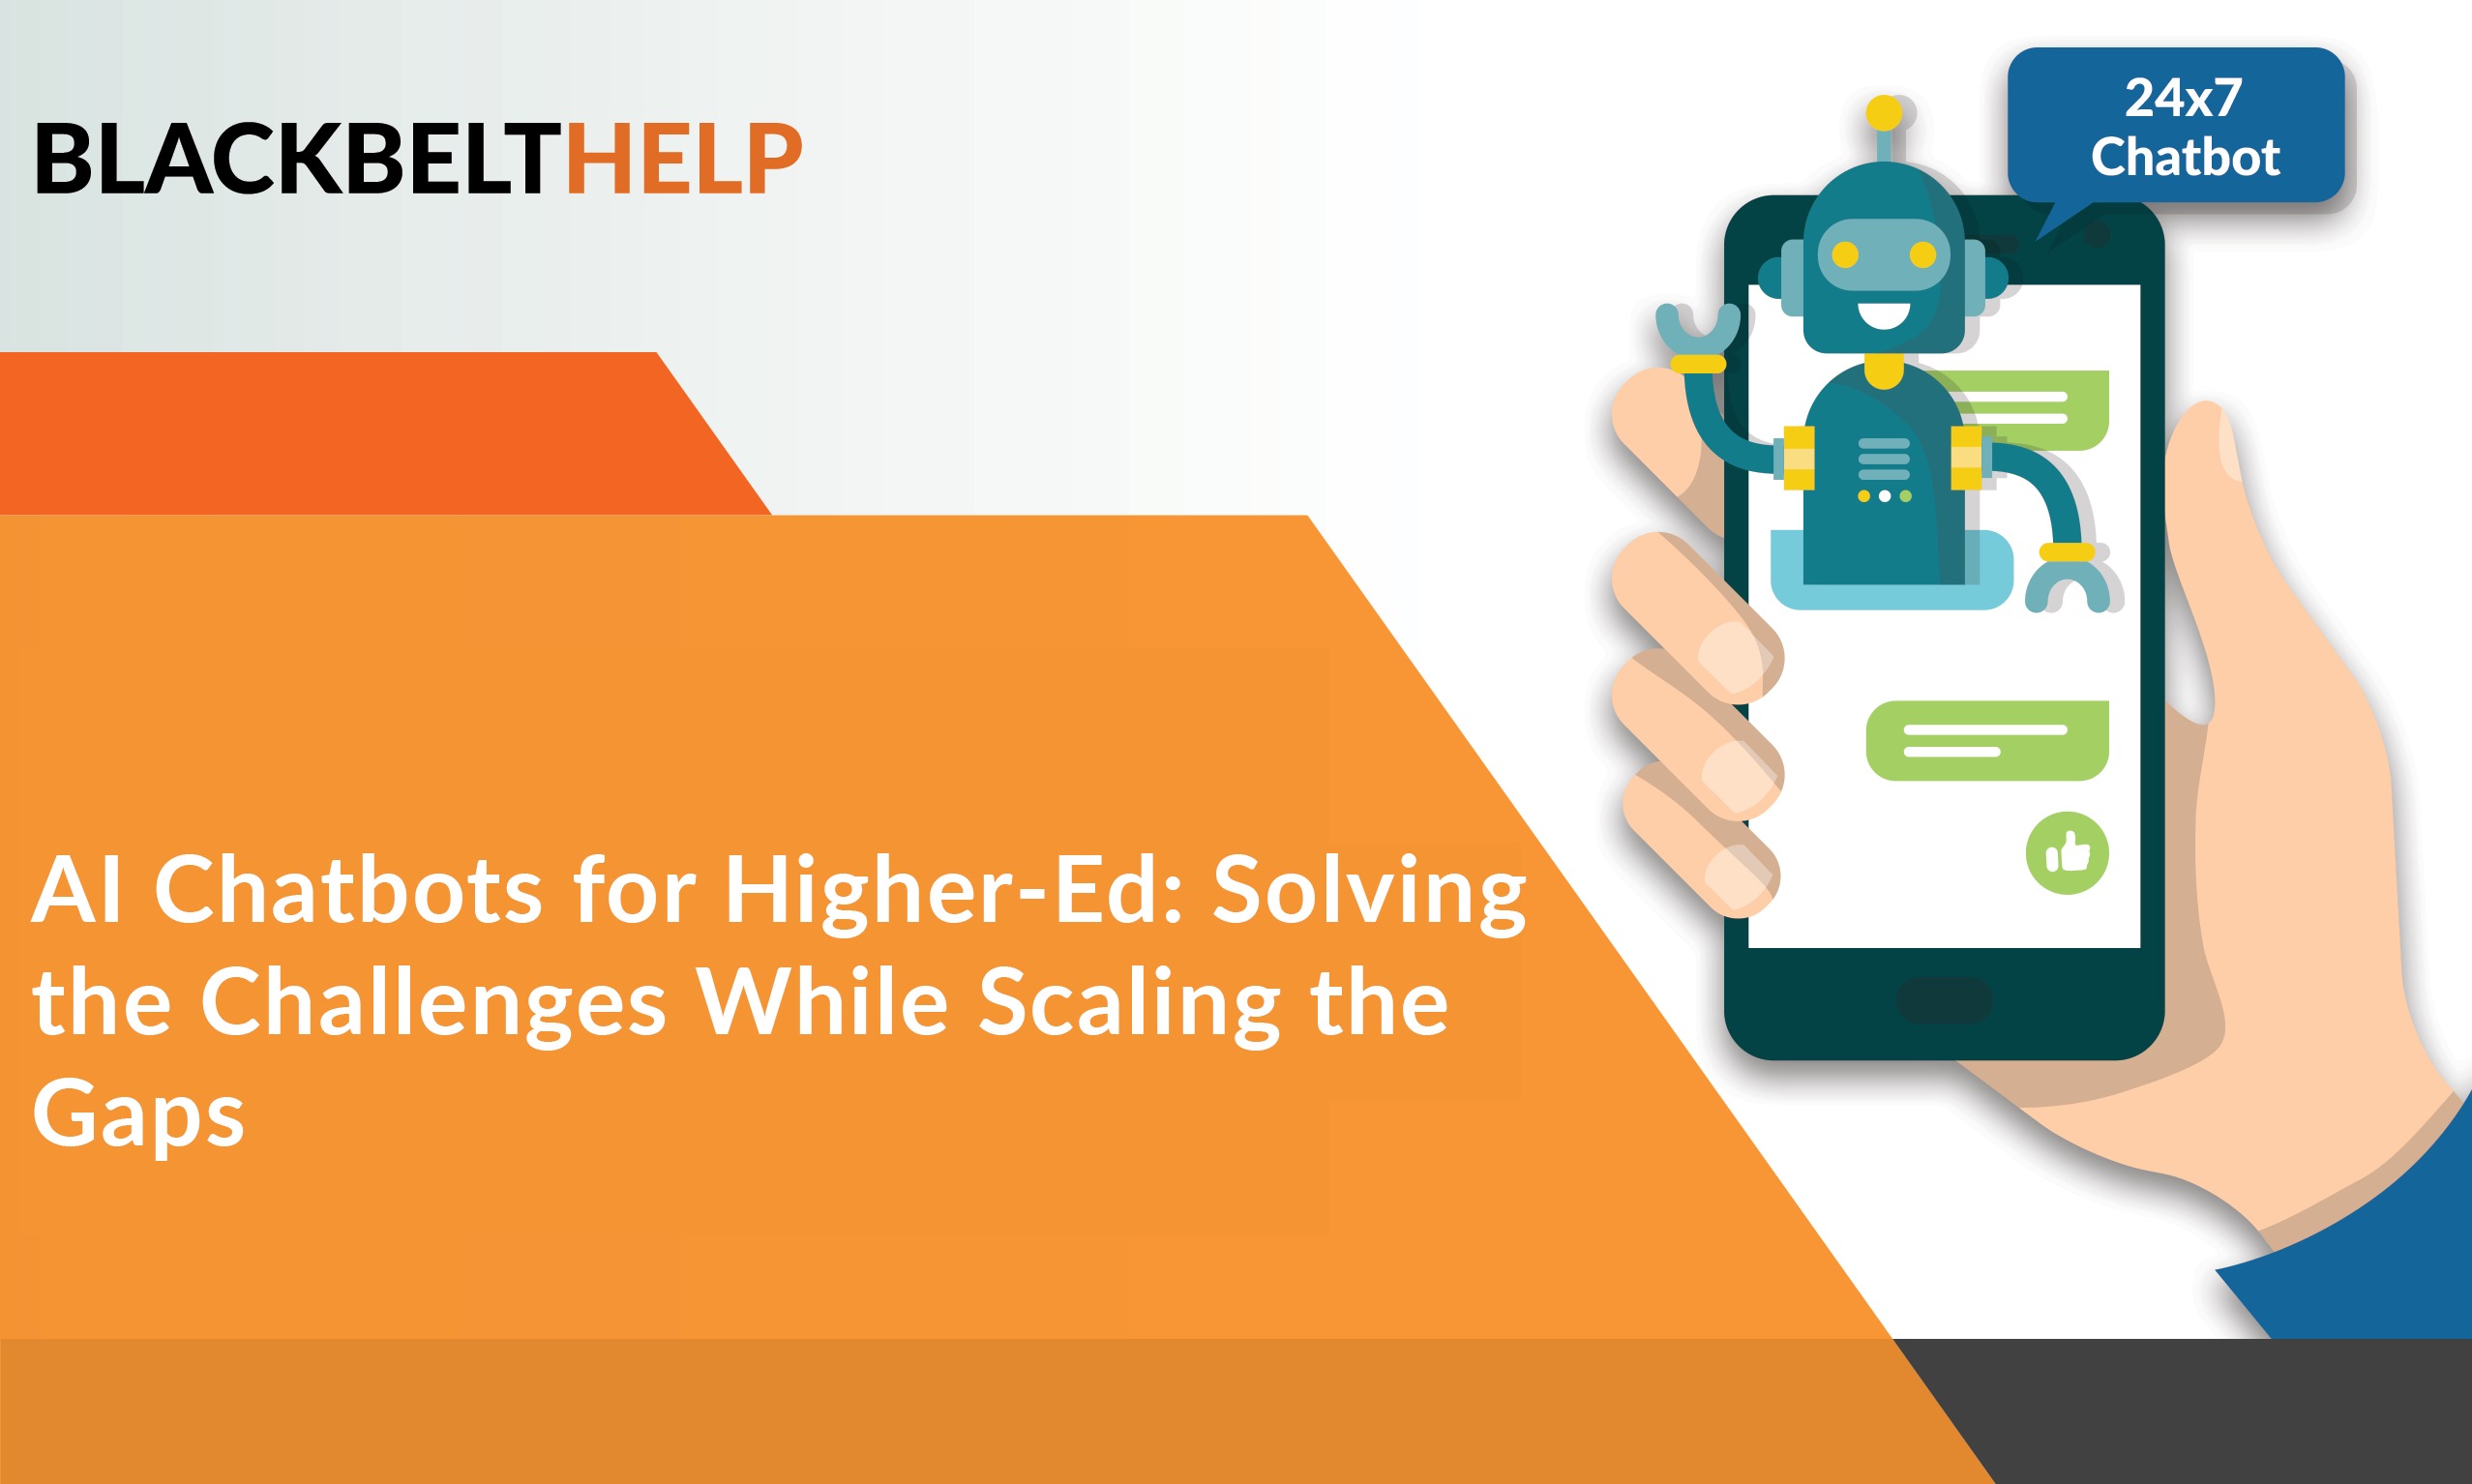 AI Chatbots for Higher-Ed: Solving the Challenges While Scaling the Gaps